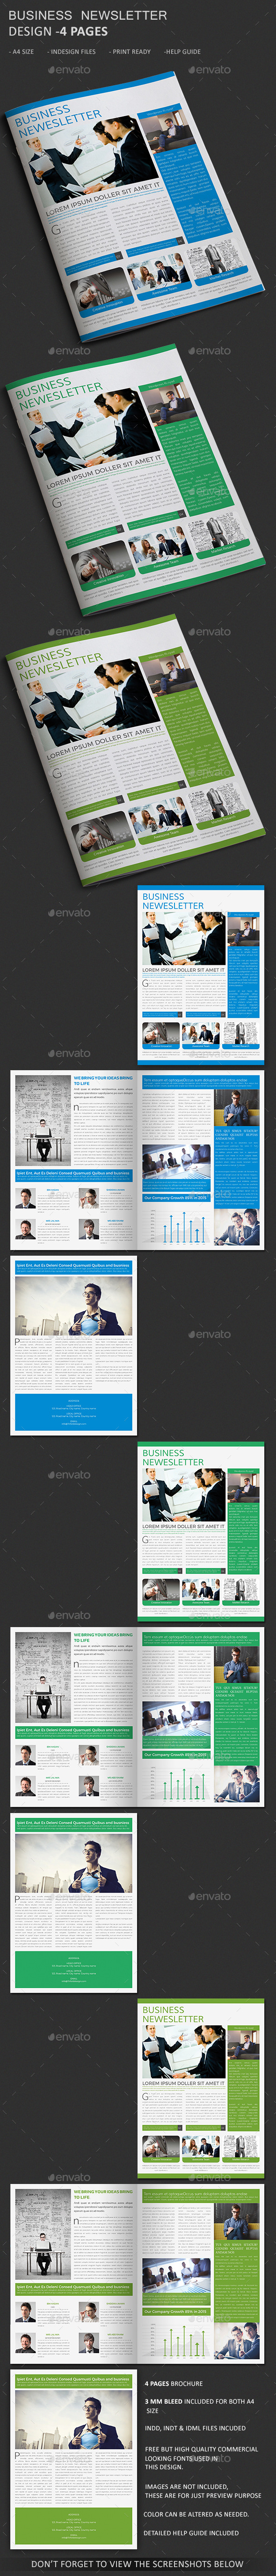 GraphicRiver Business Newsletter Template 4 Pages 10920818